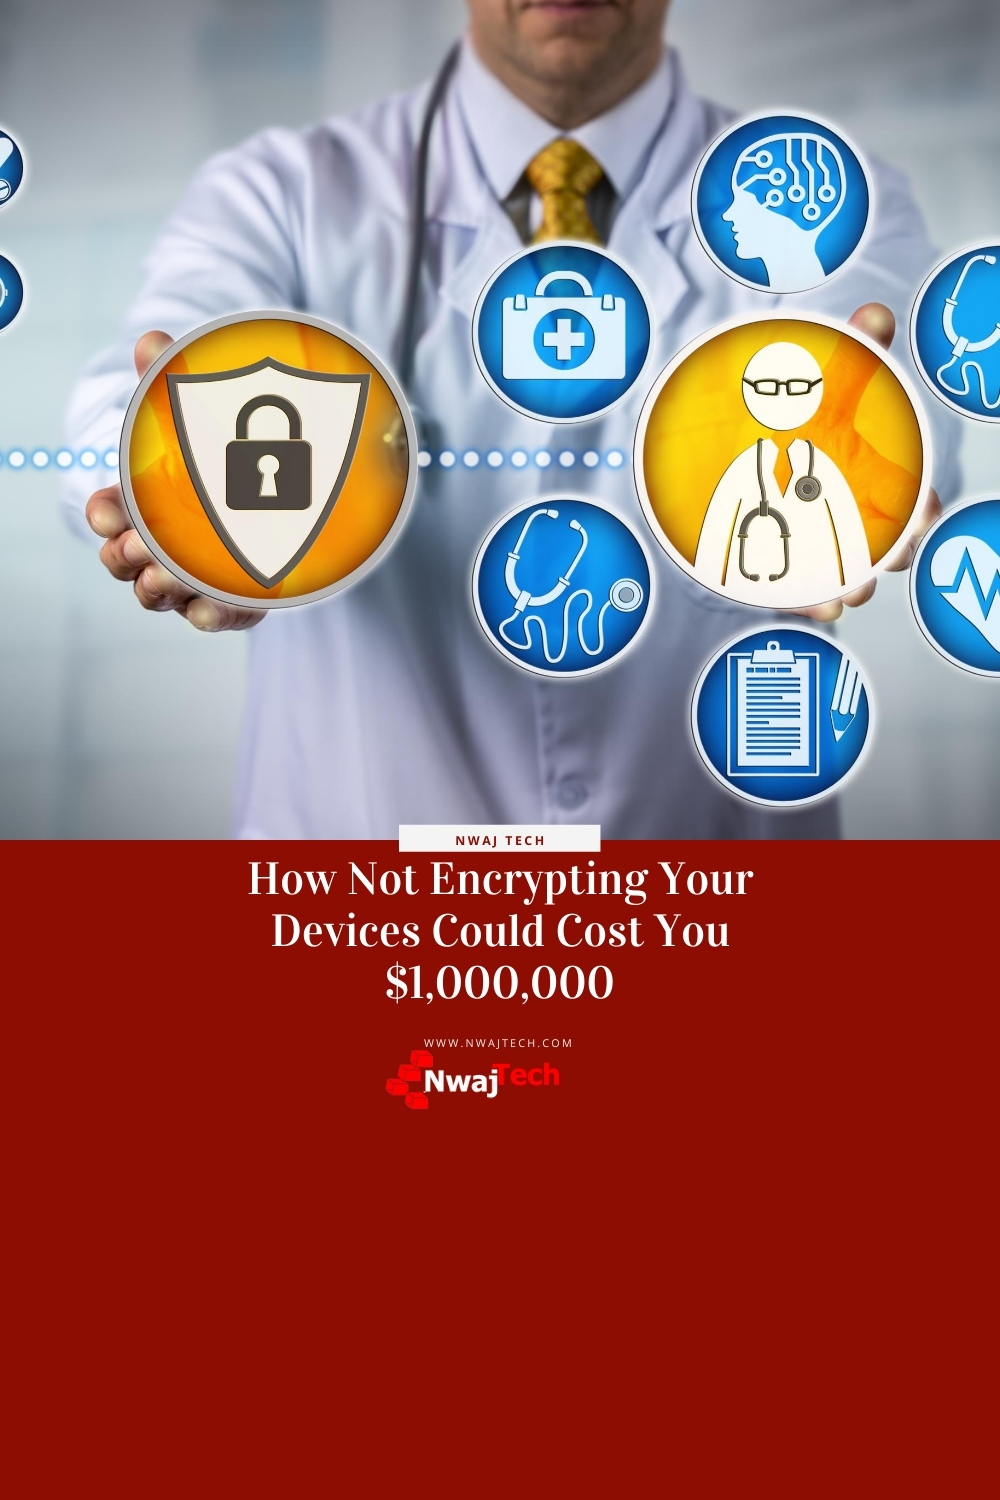 mobile device and laptop encryption to prevent hipaa violations